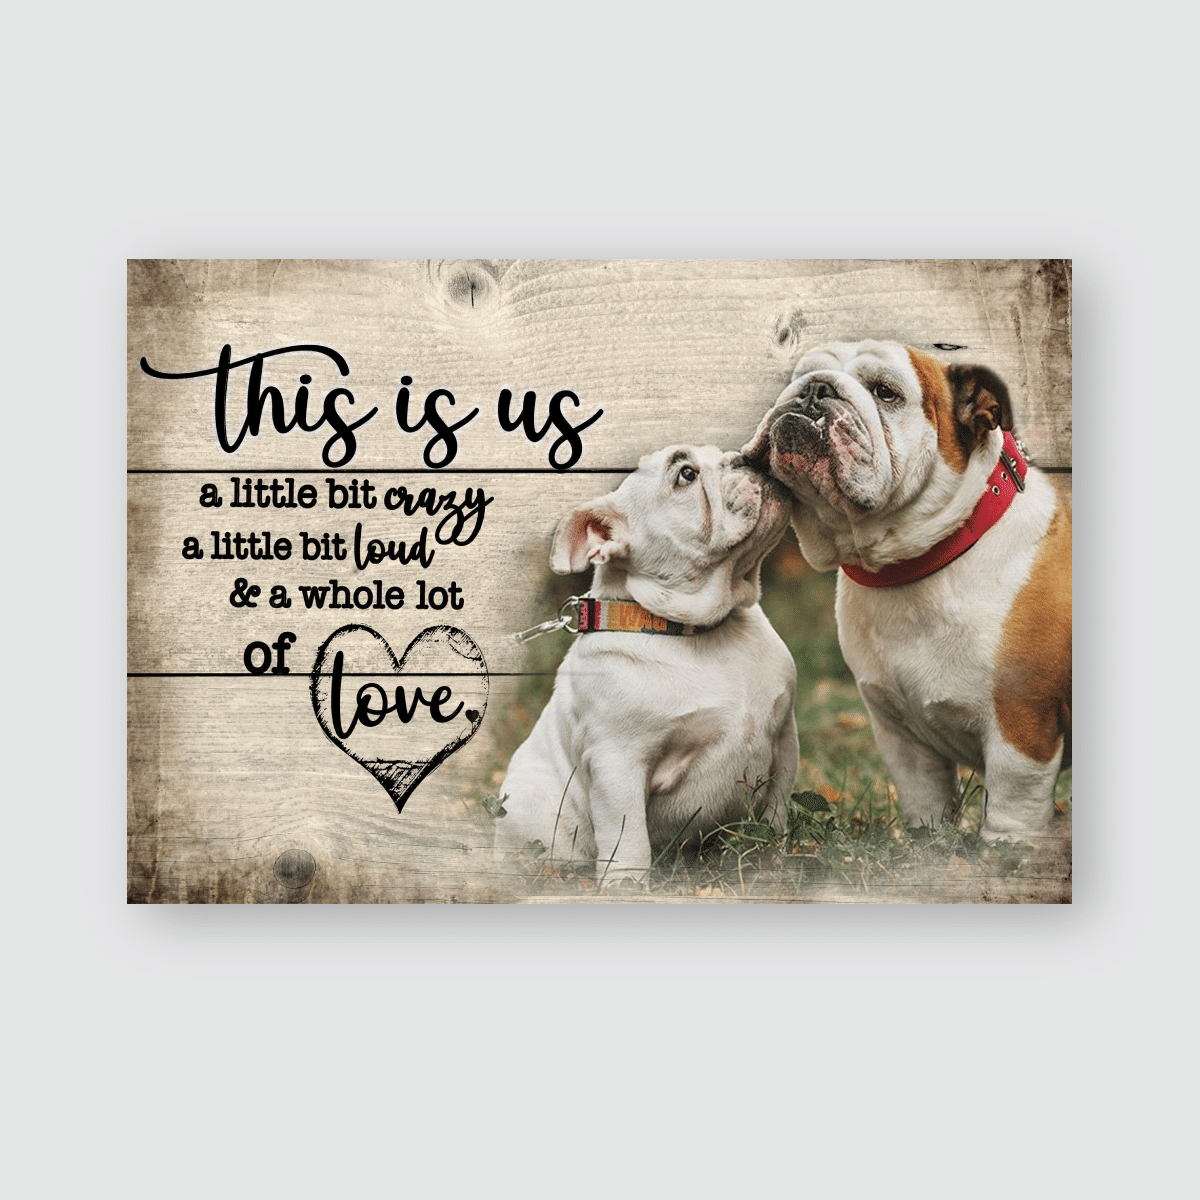 This is us - Bulldog - Poster and Canvas